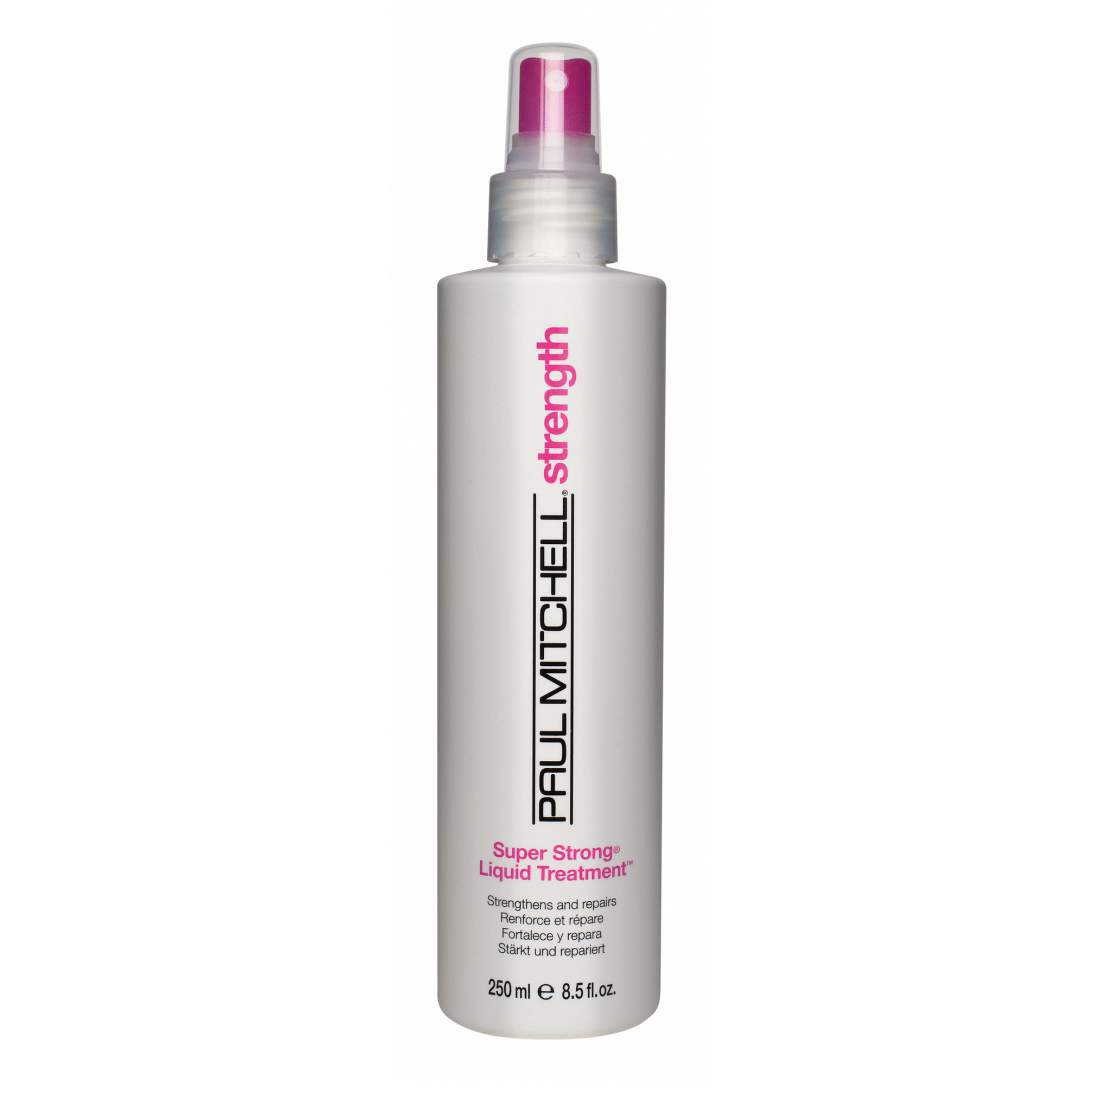 Hajszerkezet erősítő spray - Paul Mitchell Super Strong Liquid Treatment